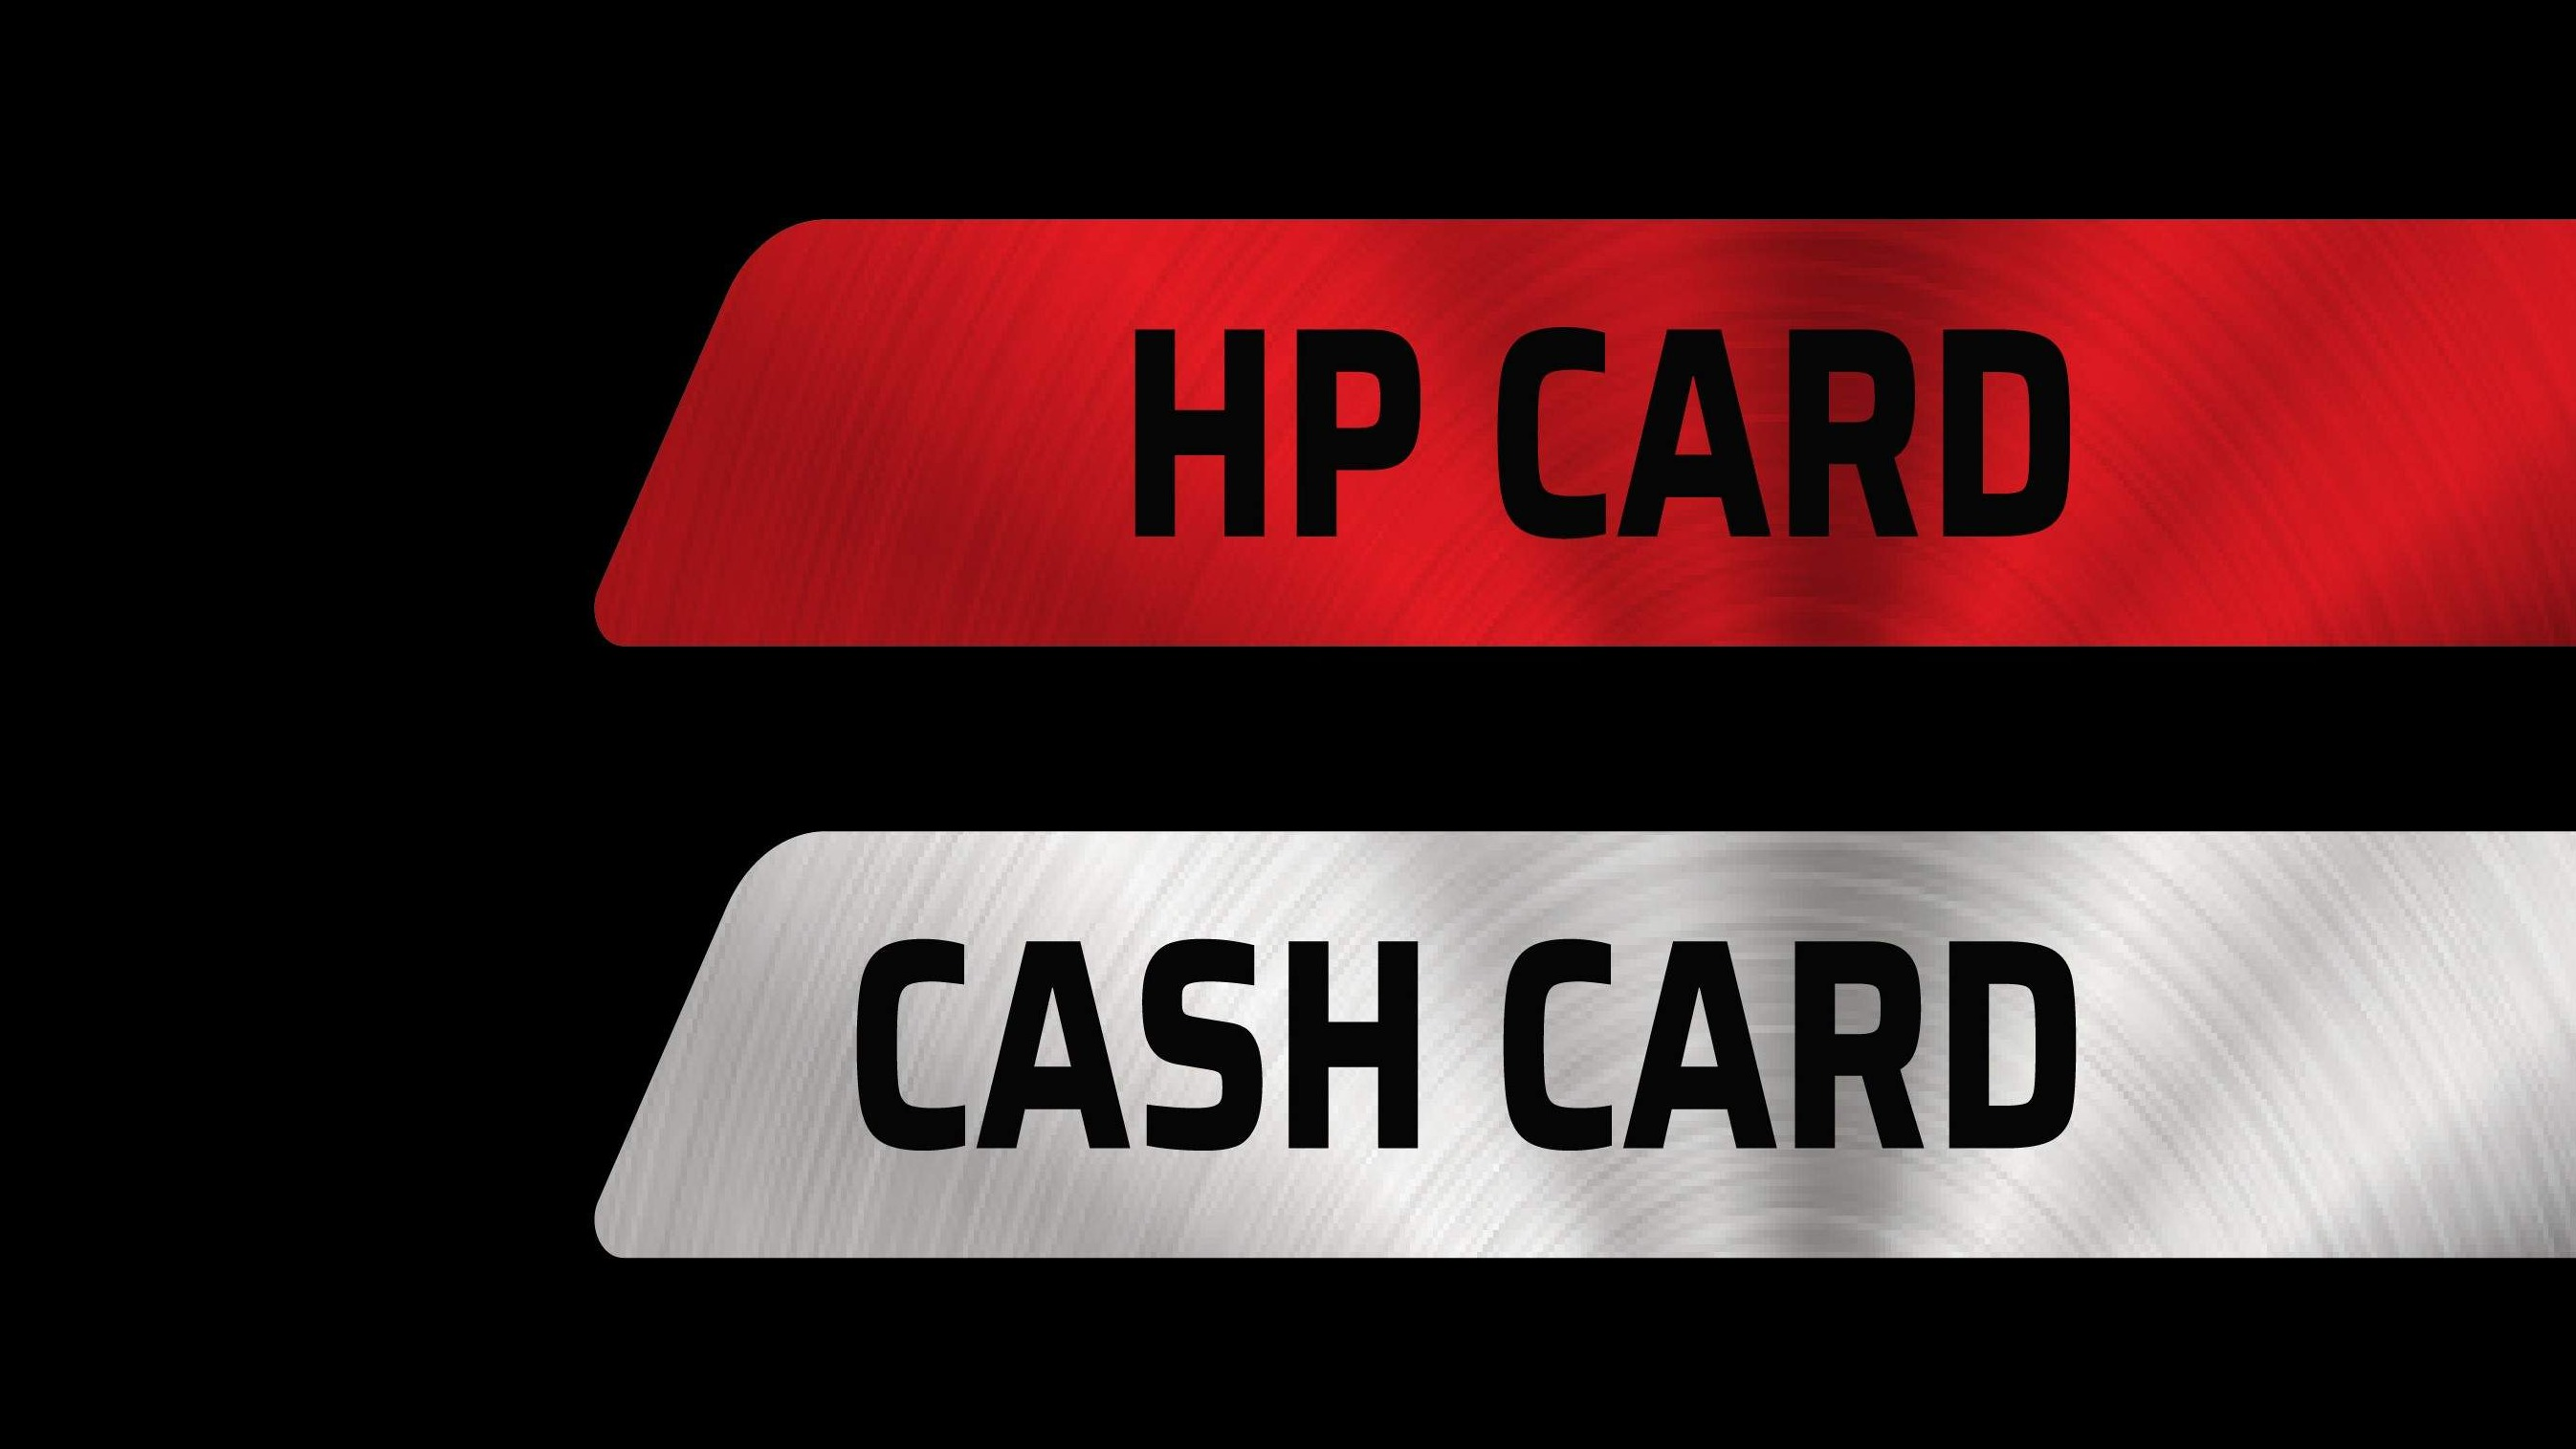 What is HP-CARD